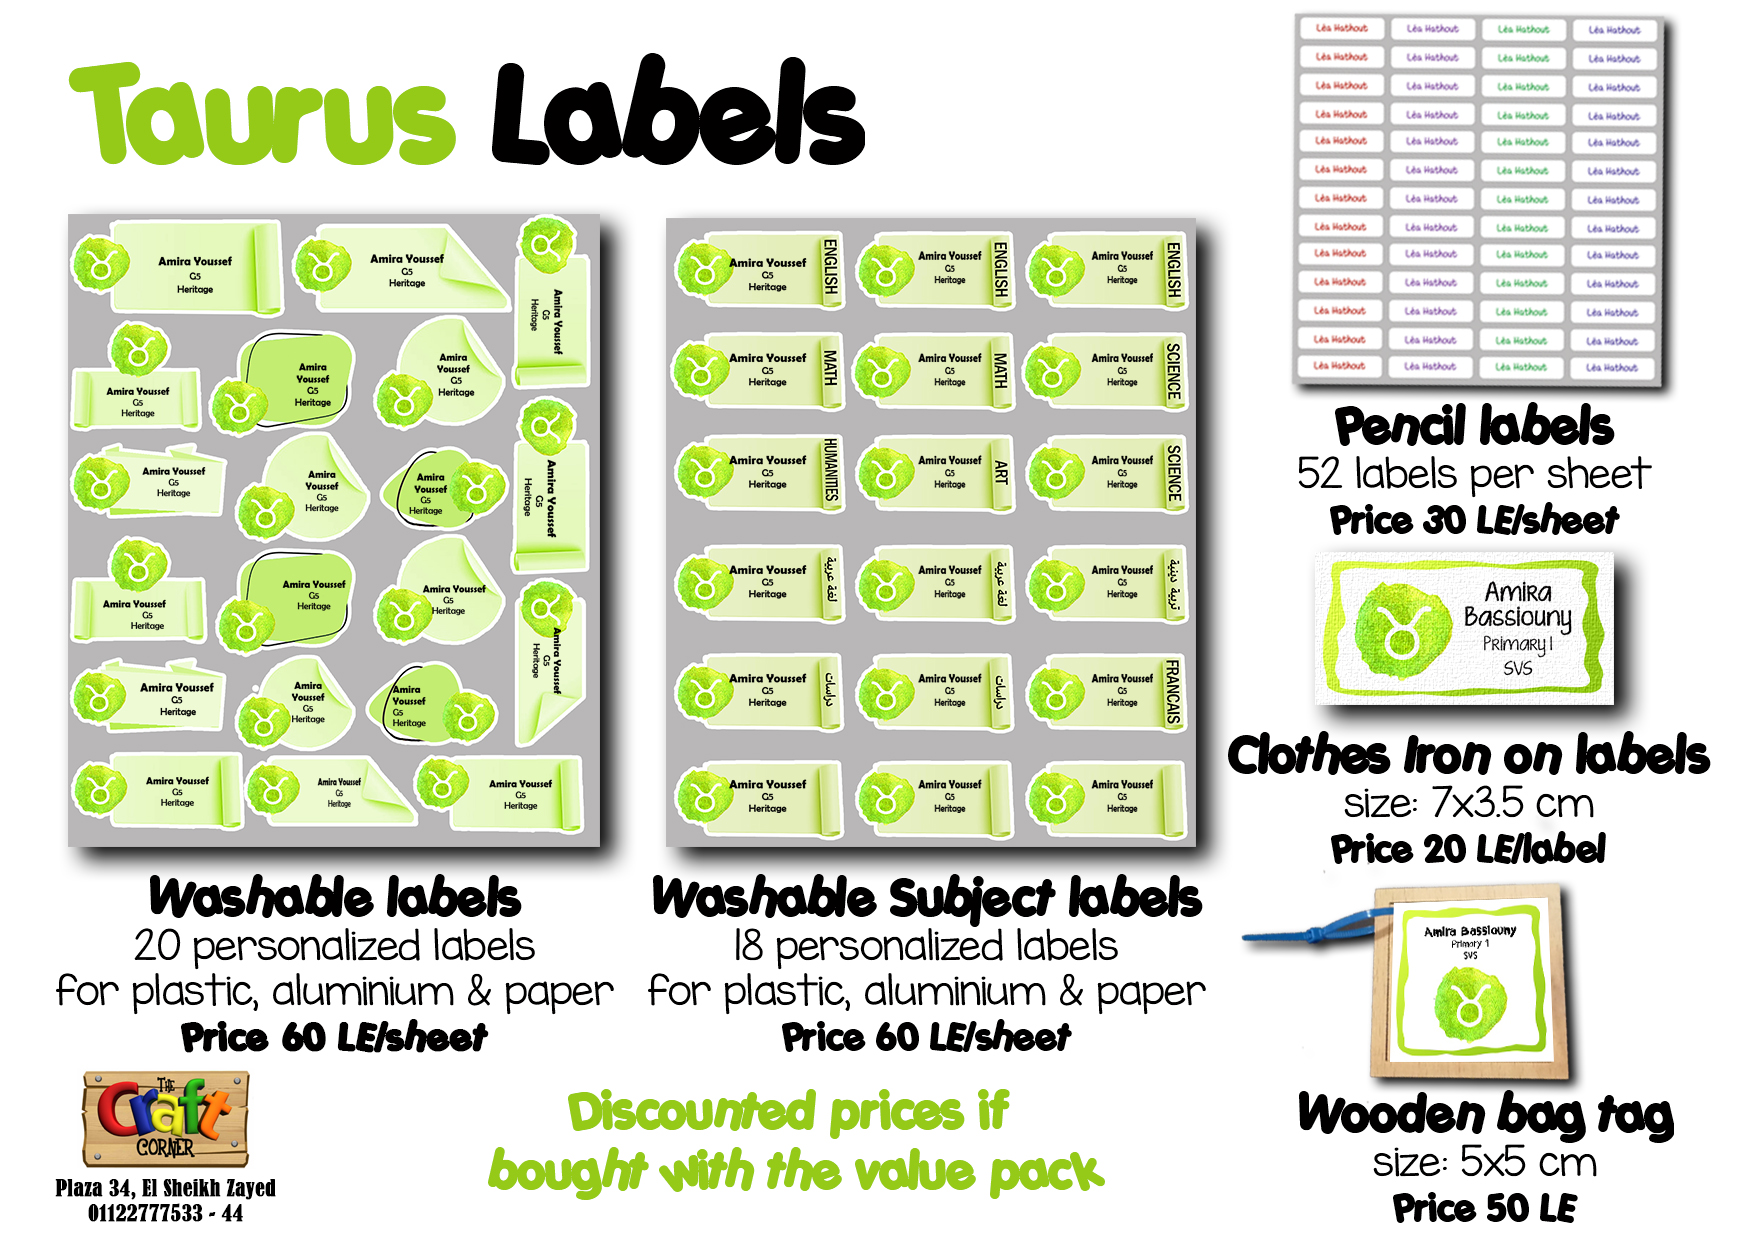 taurus Labels